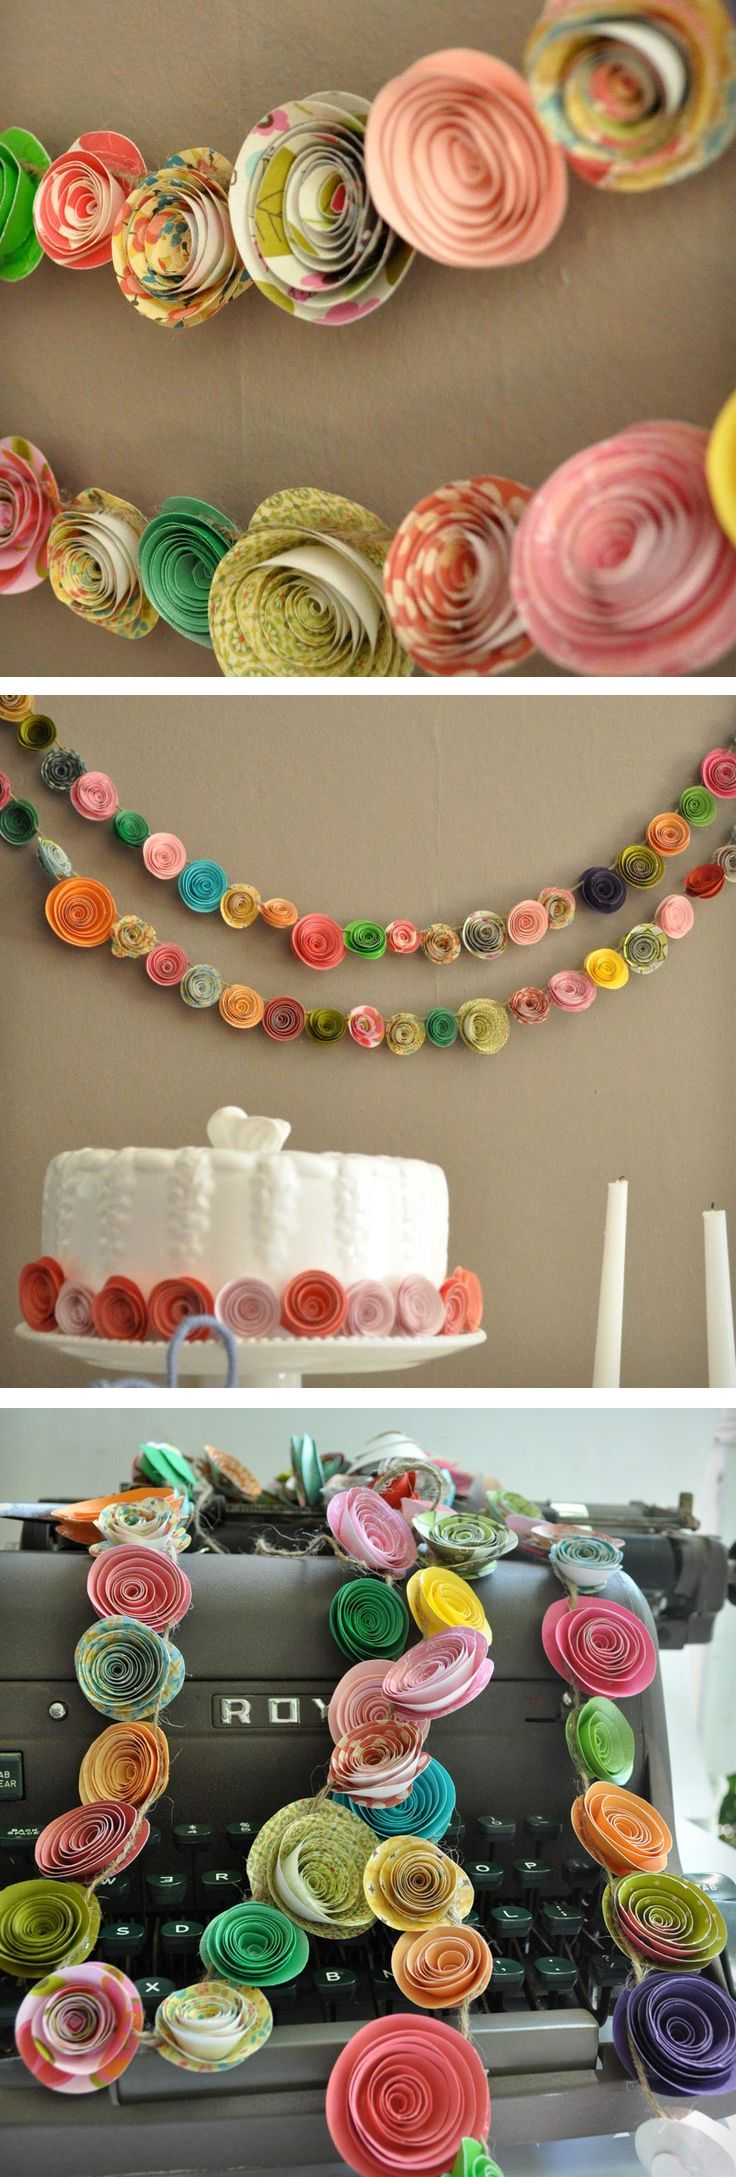 Colorful Paper Garland by Lille Syster